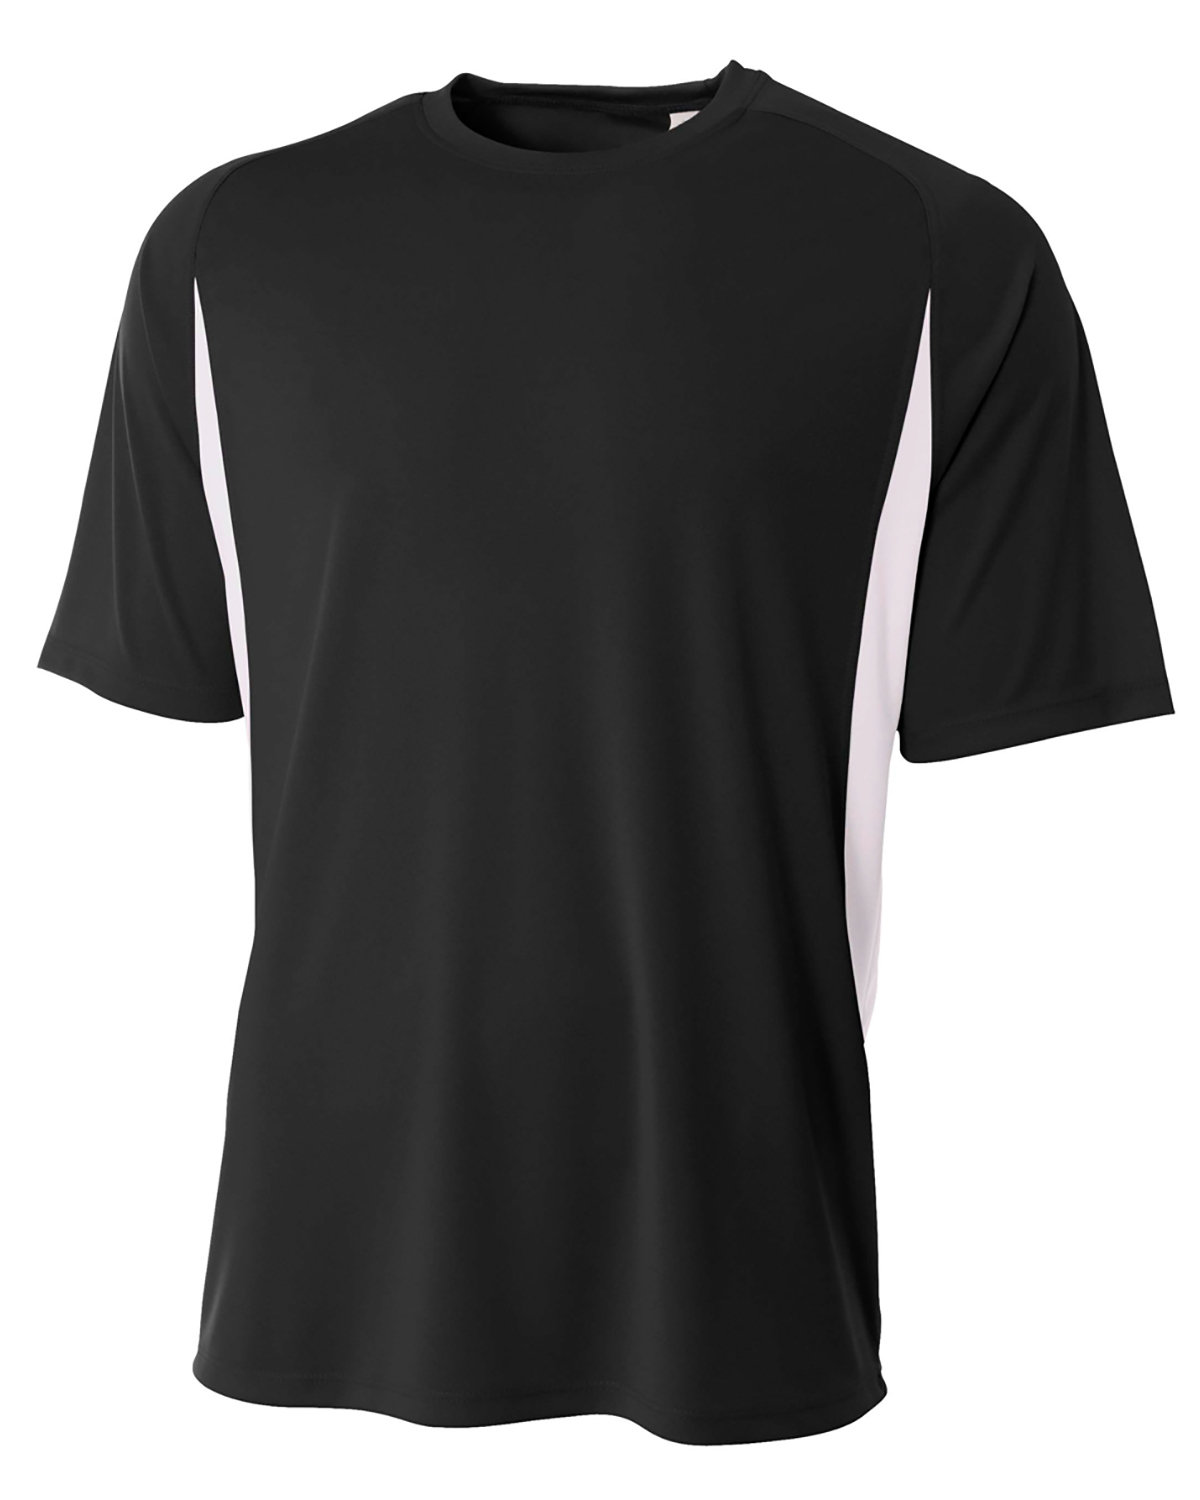 A4 Youth Cooling Performance Color Blocked T-Shirt BLACK/ WHITE